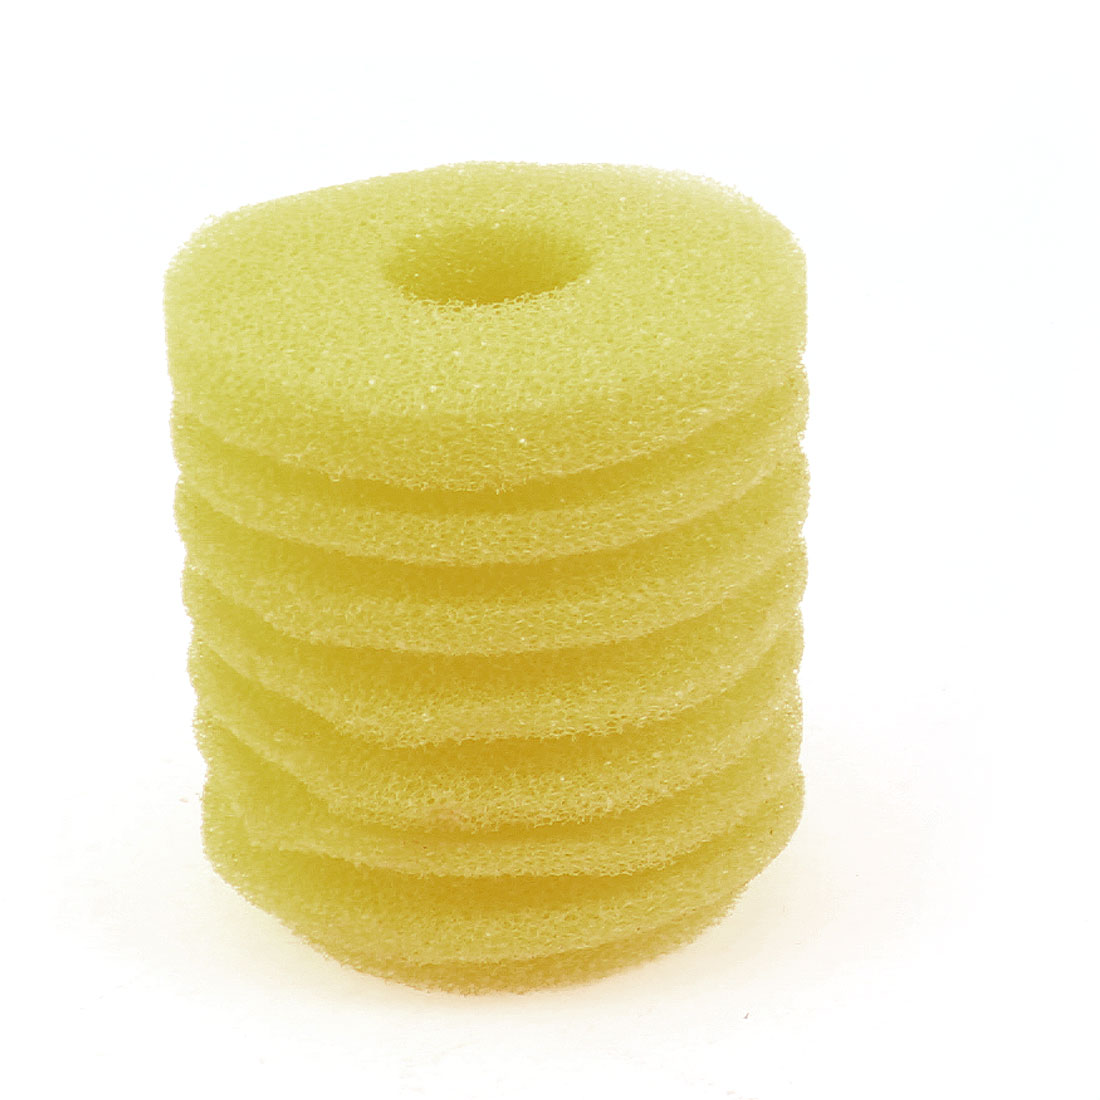 70mmx60mm Cylinder Biochemical Filter Sponge Yellow for Fish Tank Aquariums